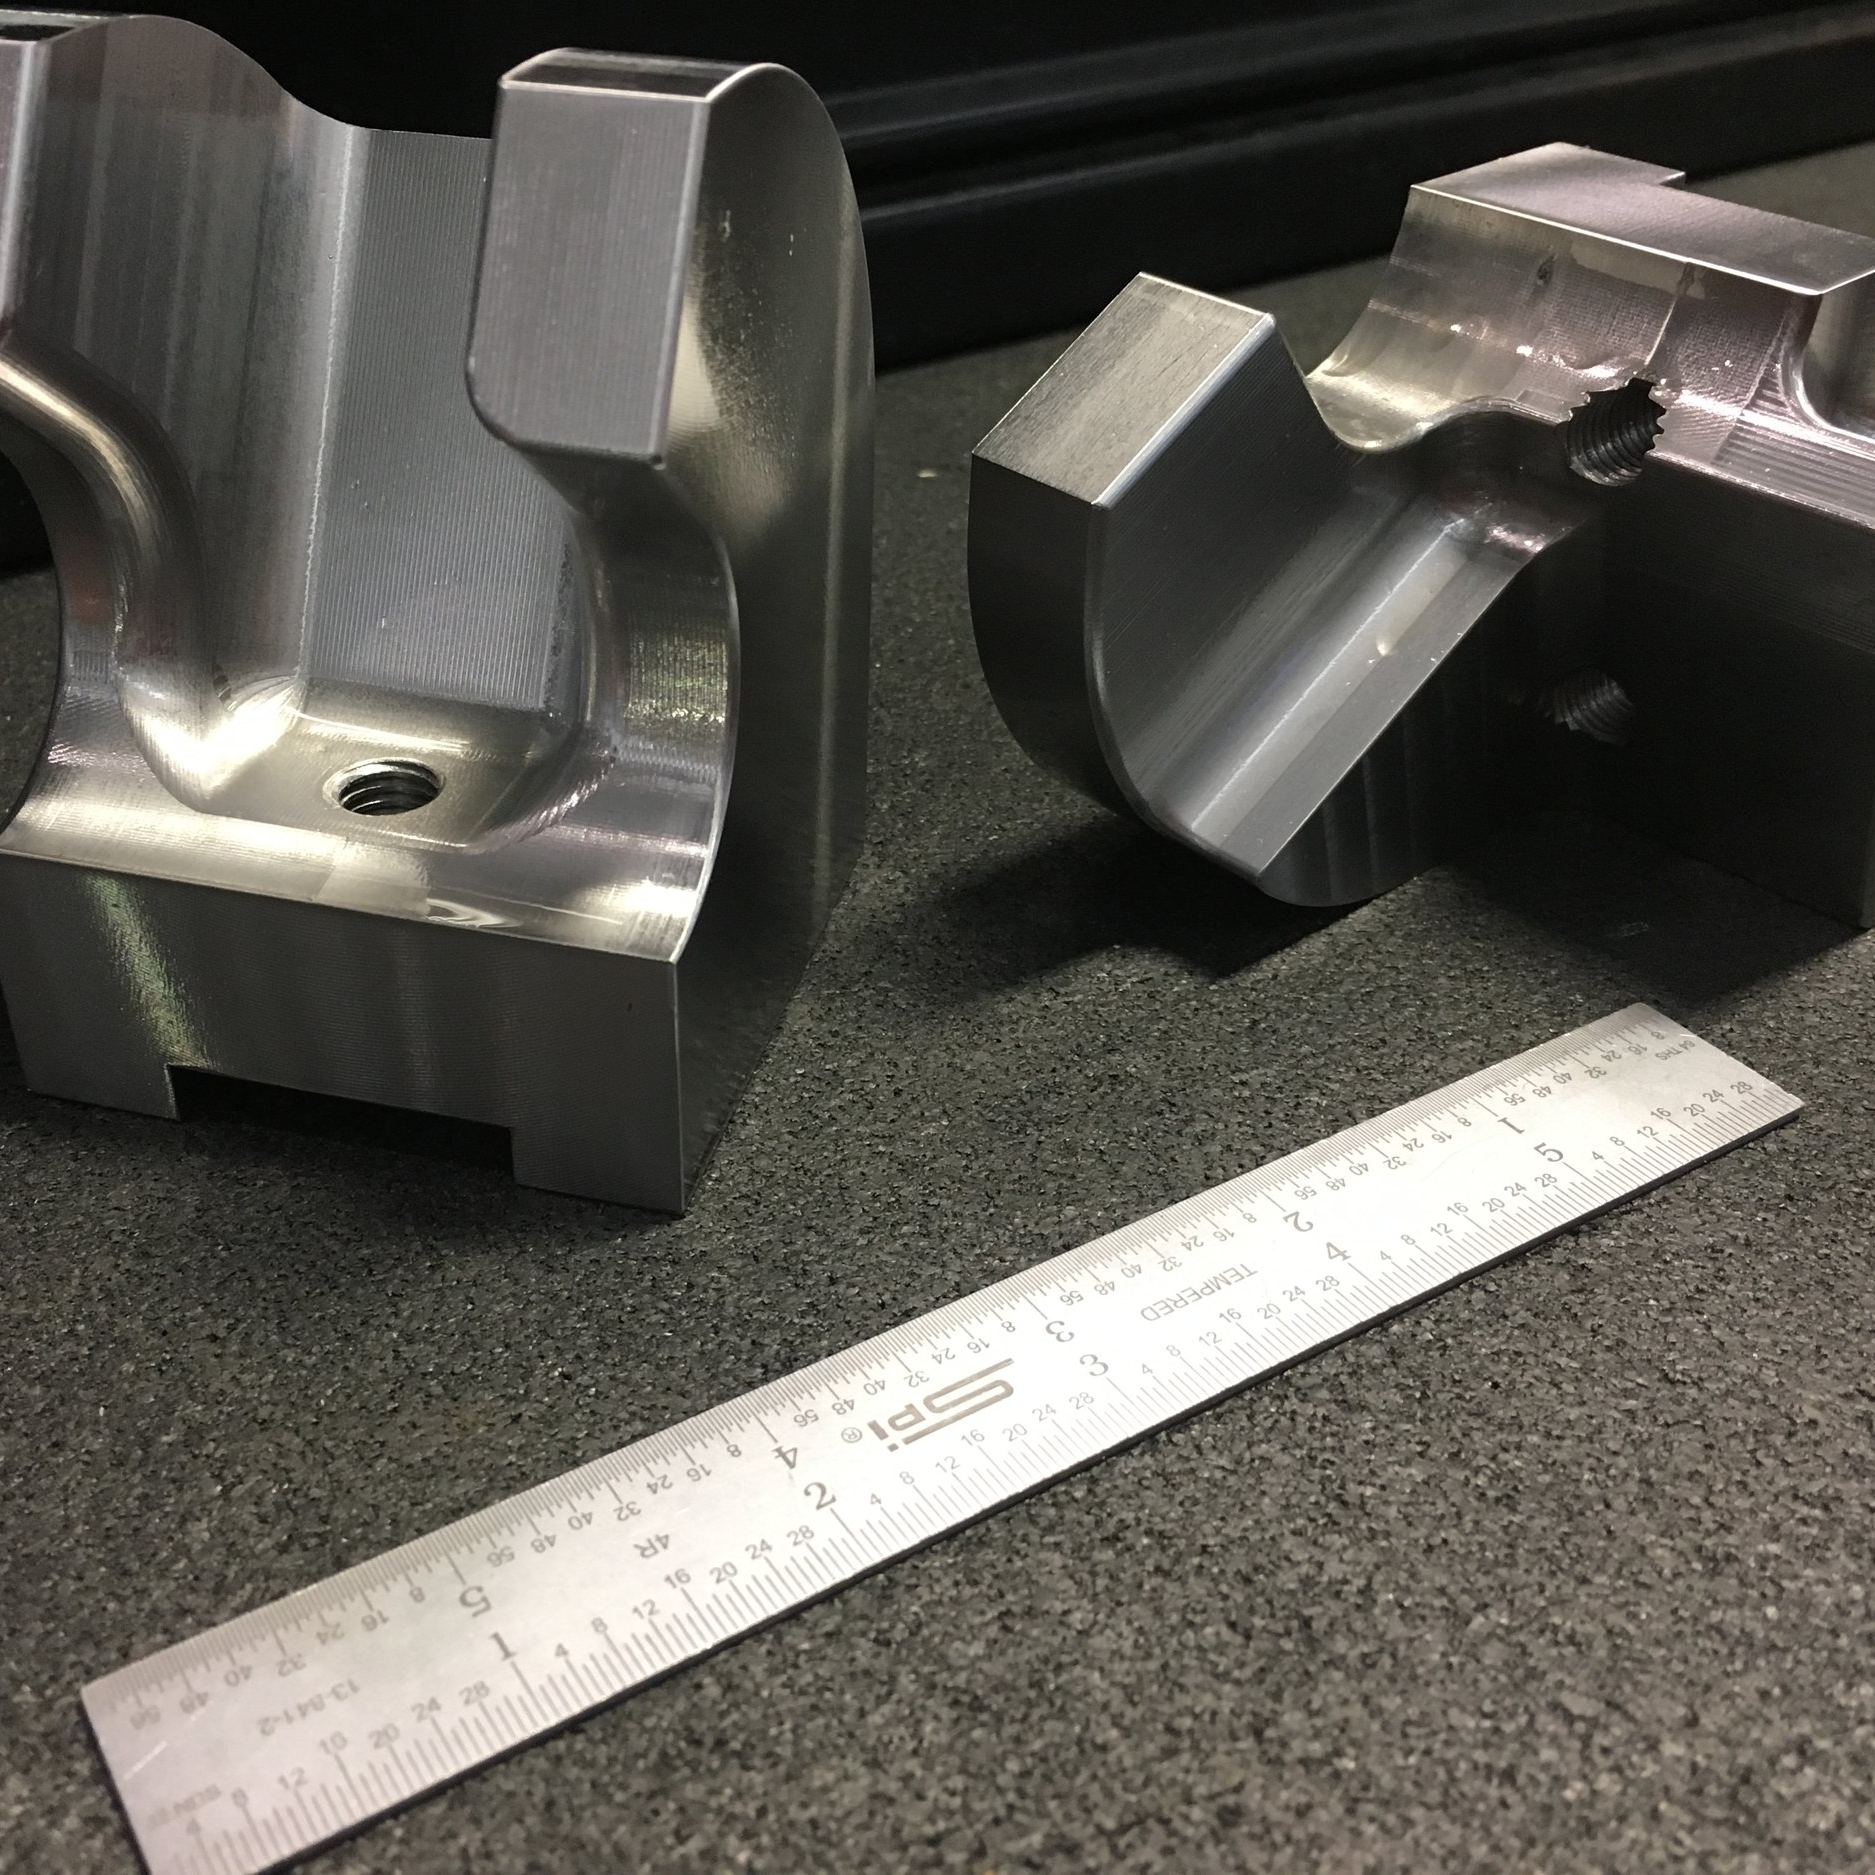 Fitz-Thors-Engineering_manufacturing_CNC-milling-machine-parts-ruler.JPG